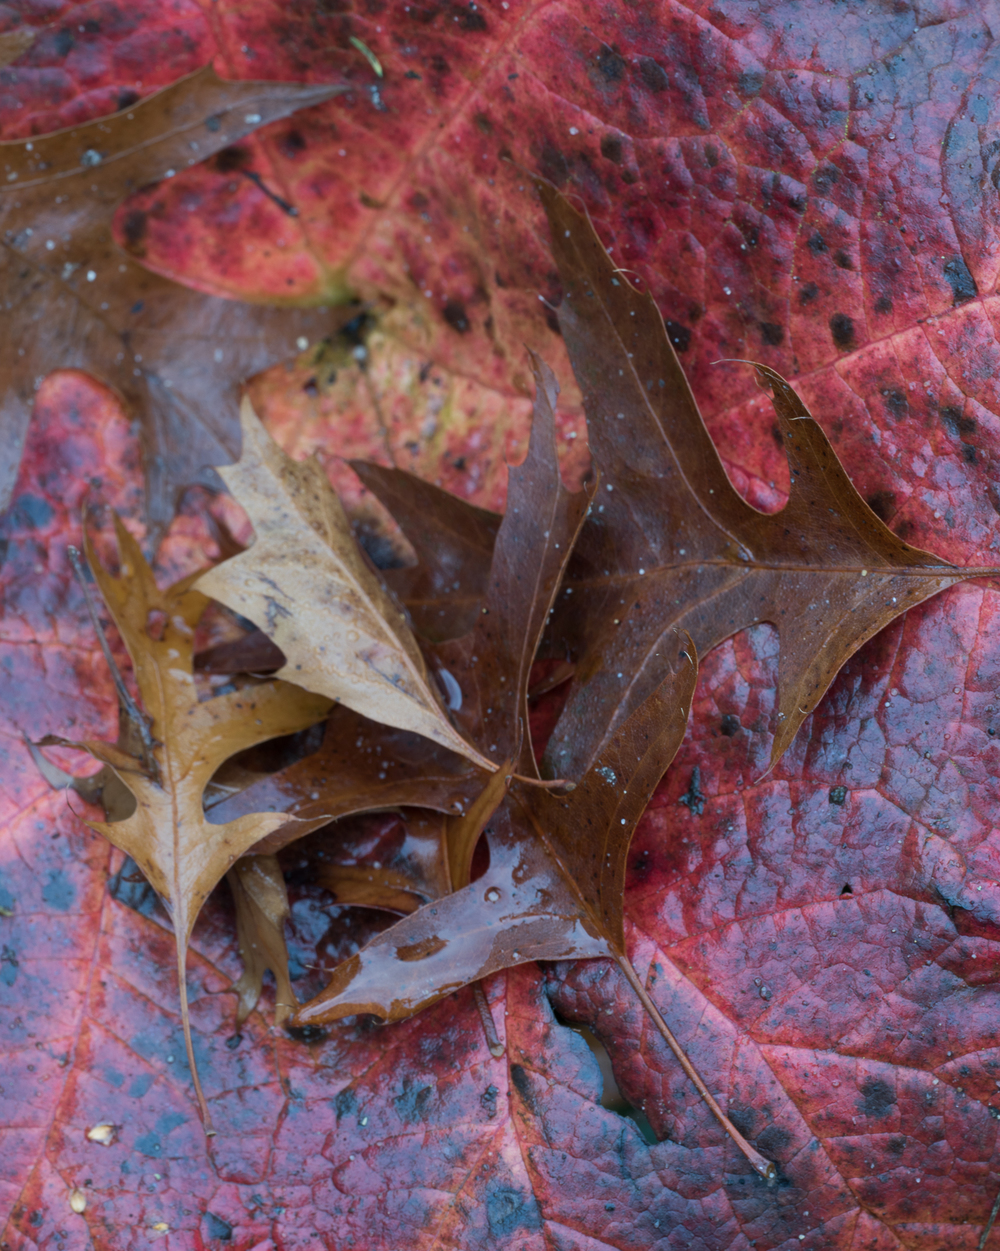 Fallen leaves are held in a large leaf of Darmera peltata 'Nana'. The rich reds of the dying leaves offer a palette of colour that is not available at other times of the year. Photography by Philip Smith courtesy Beth Chatto Gardens